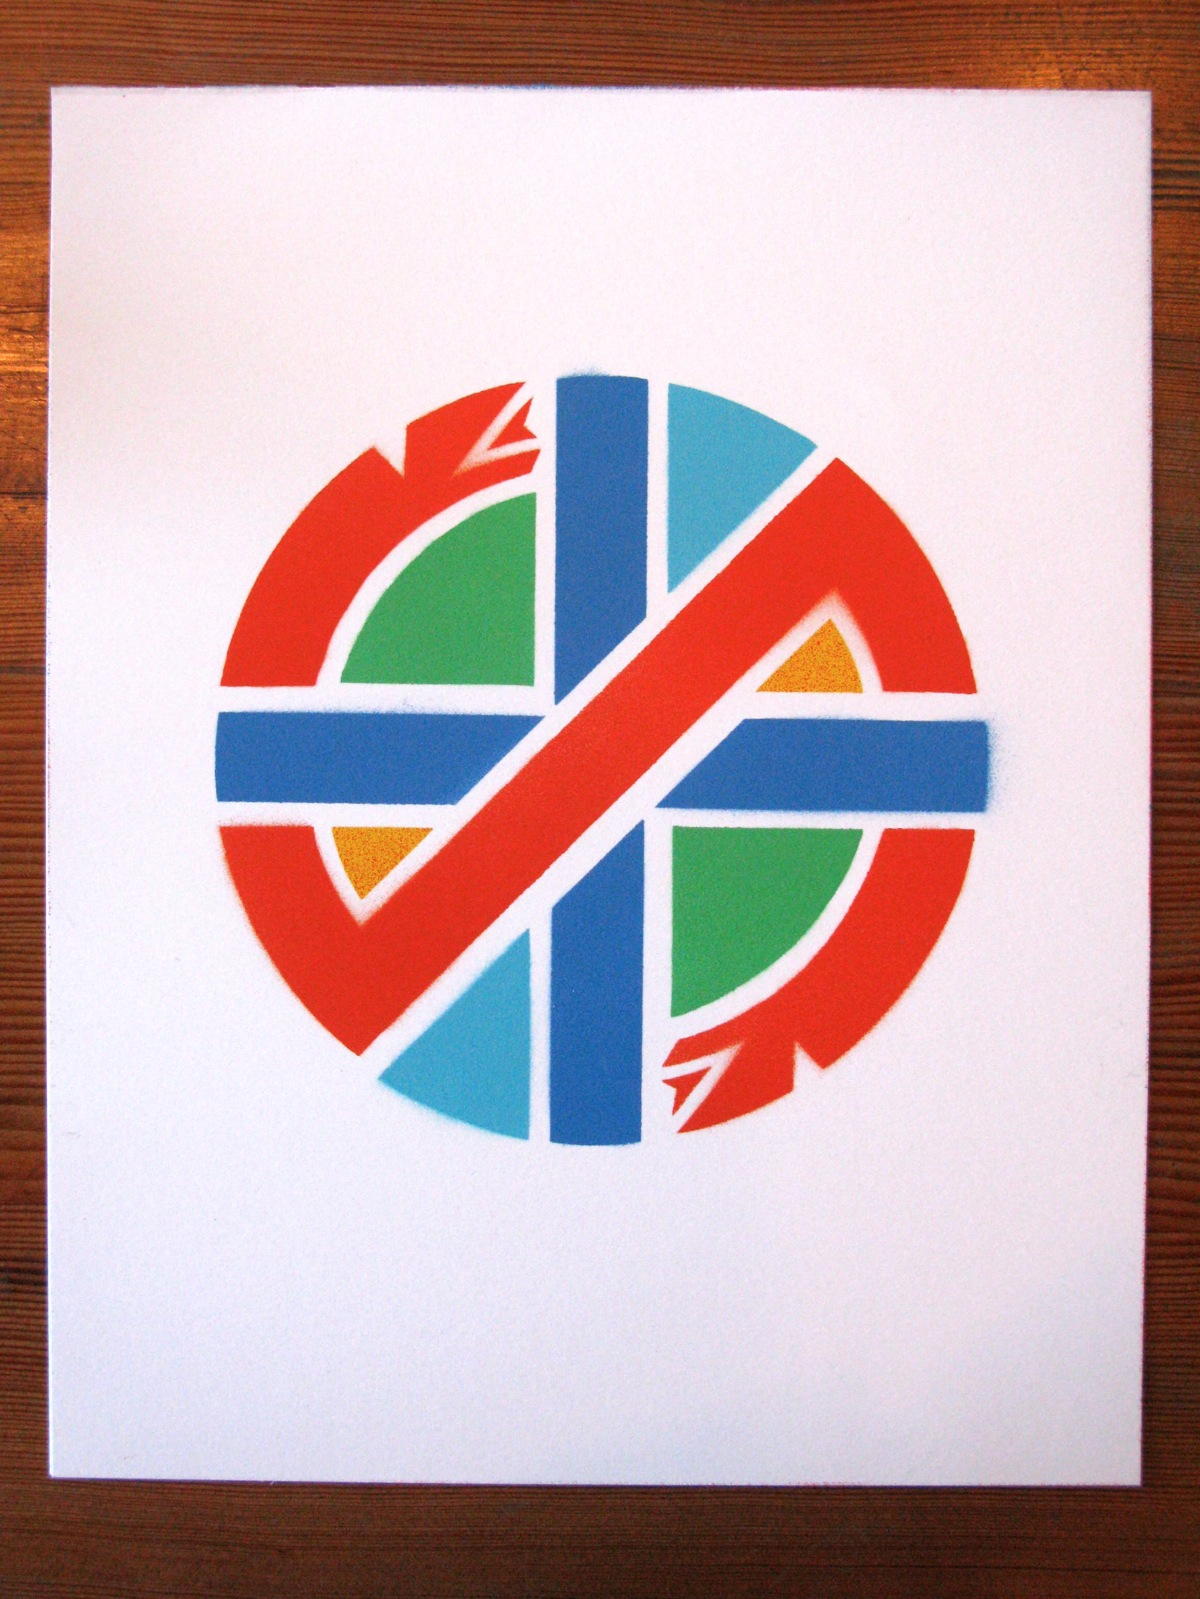 free the crass symbol    by the designer of the crass symbol  dave king